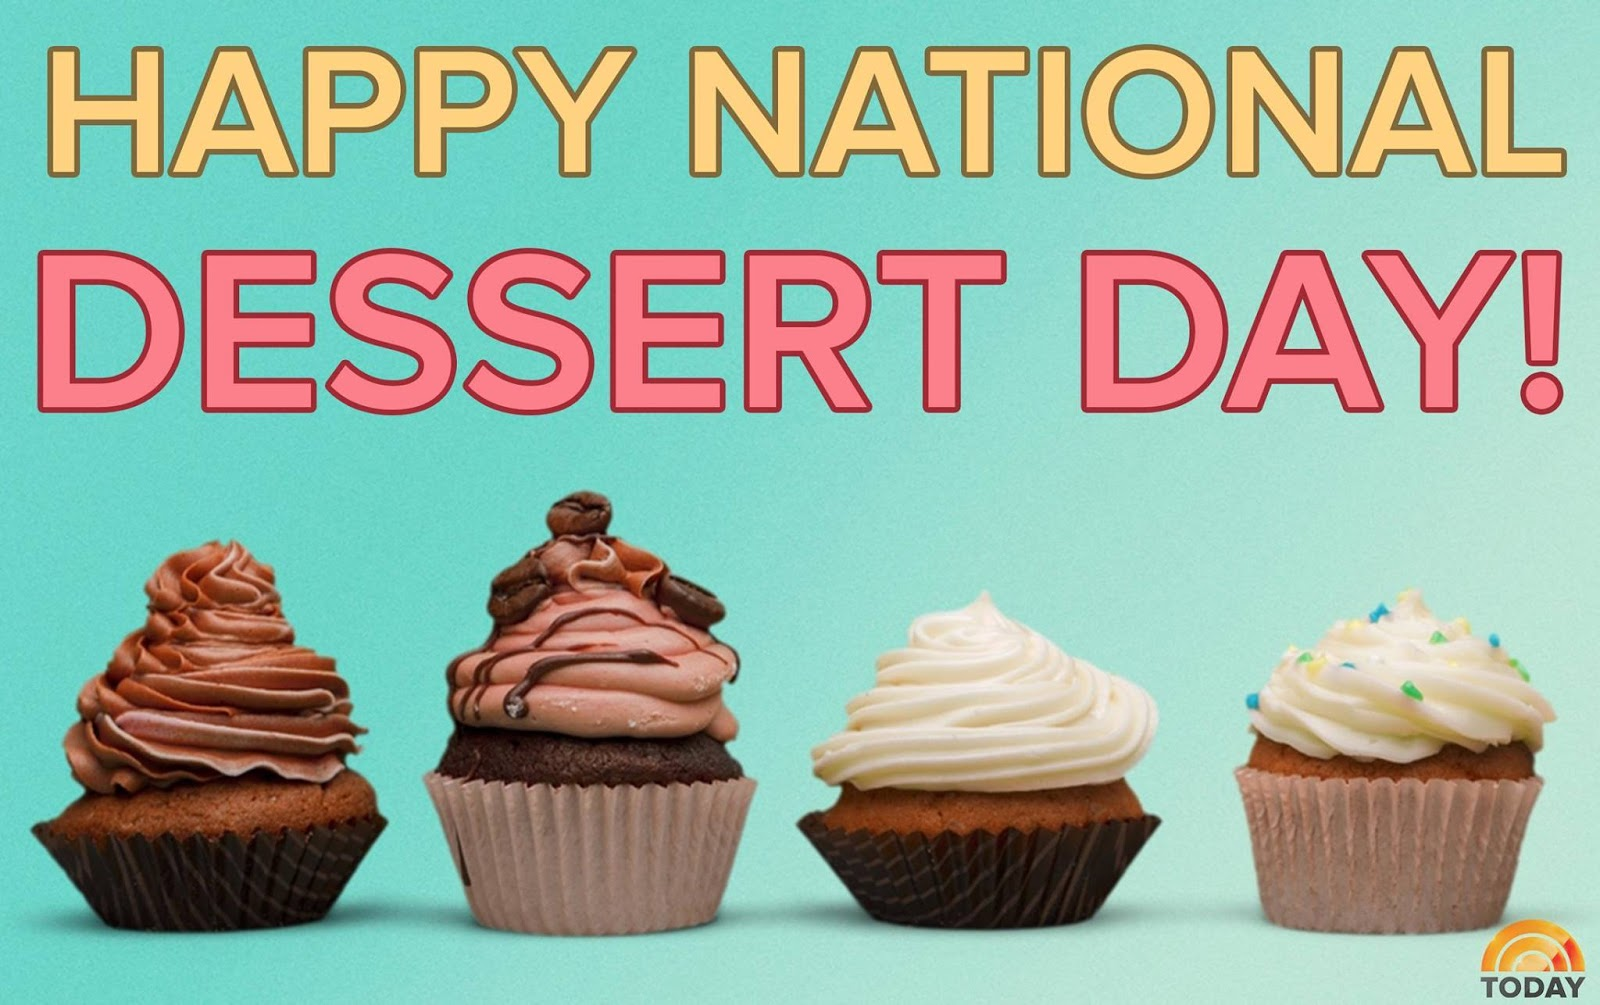 National Dessert Day Wishes For Facebook